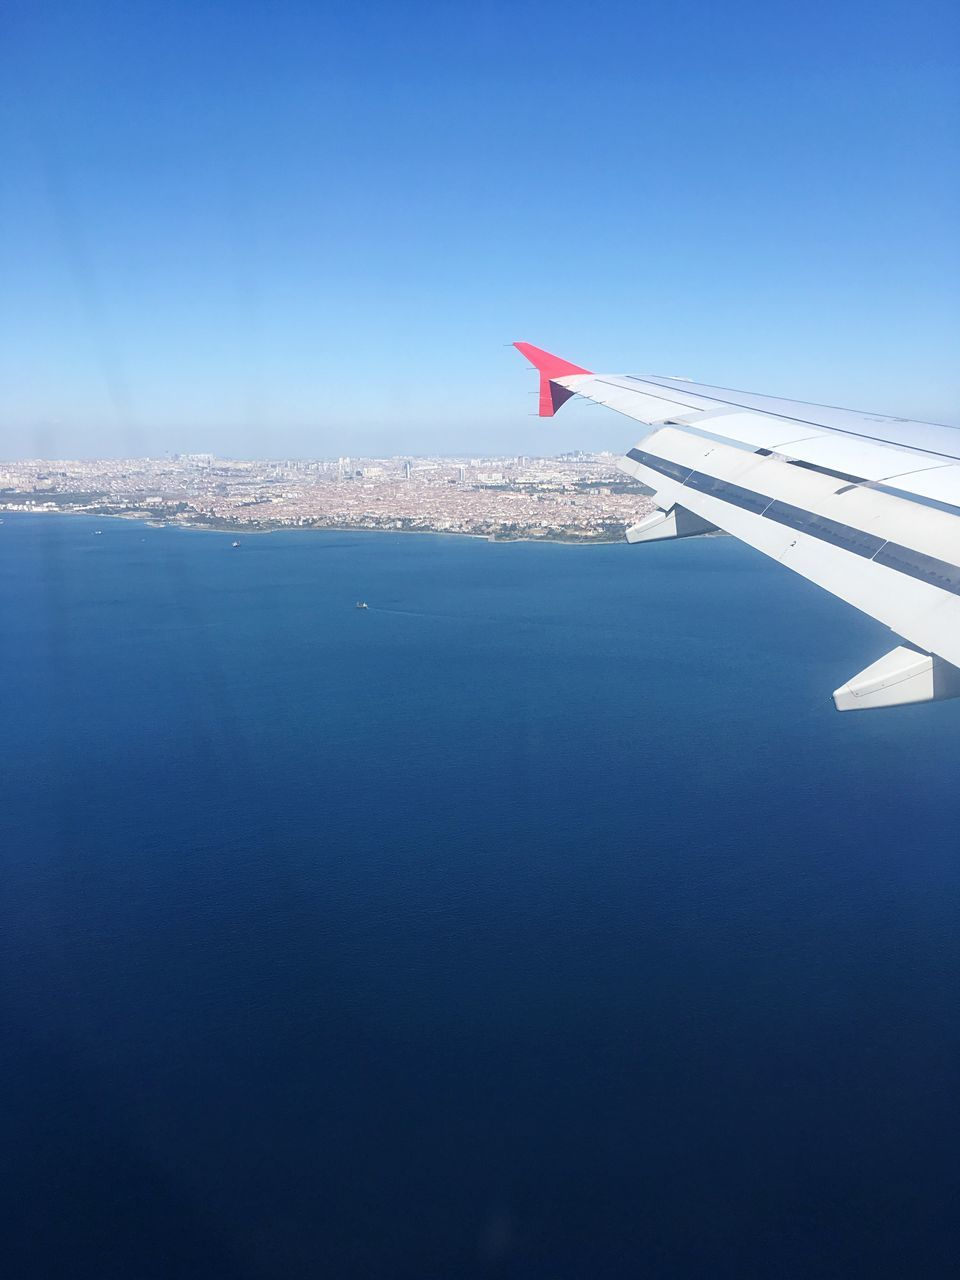 airplane, transportation, journey, aerial view, airplane wing, flying, travel, no people, blue, nature, mode of transport, aircraft wing, day, air vehicle, sky, outdoors, beauty in nature, scenics, water